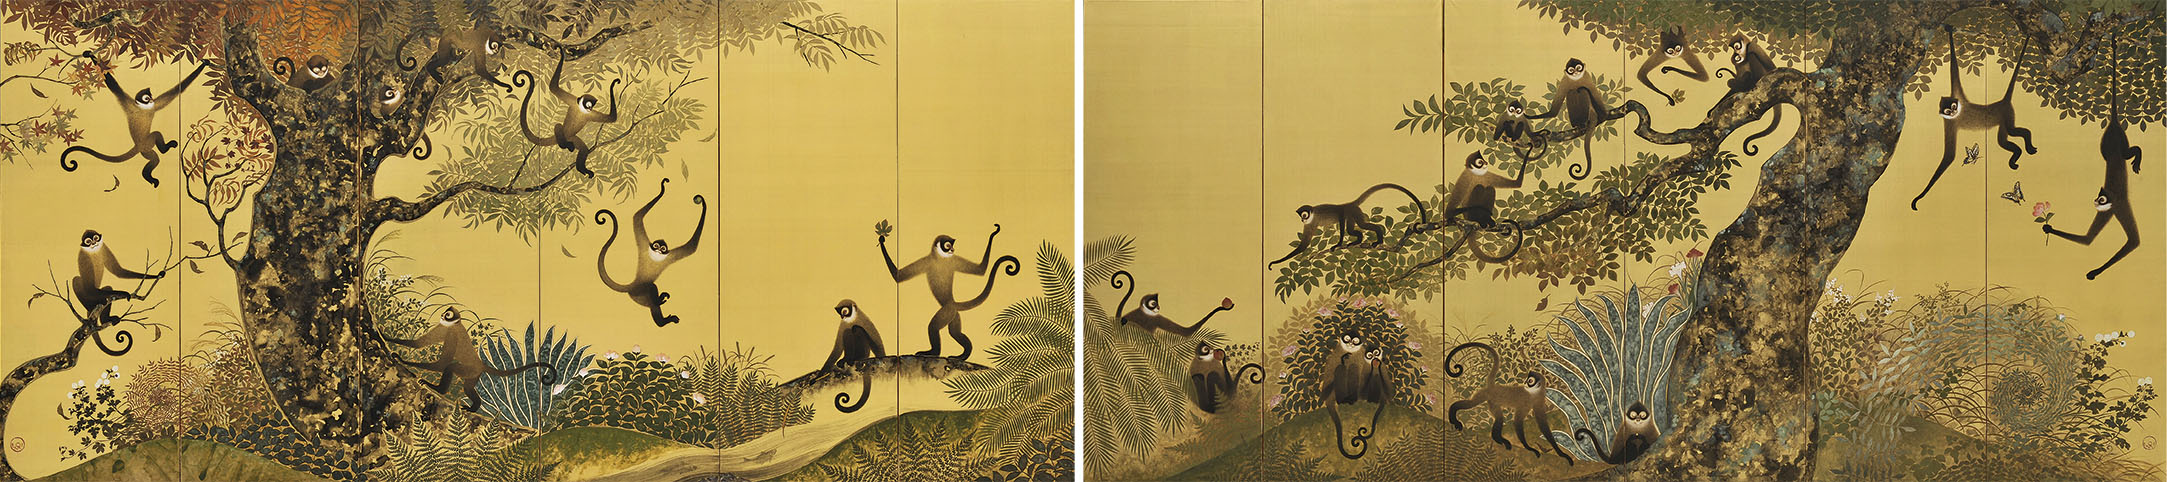 Joyful monkey; & Playful Monkey